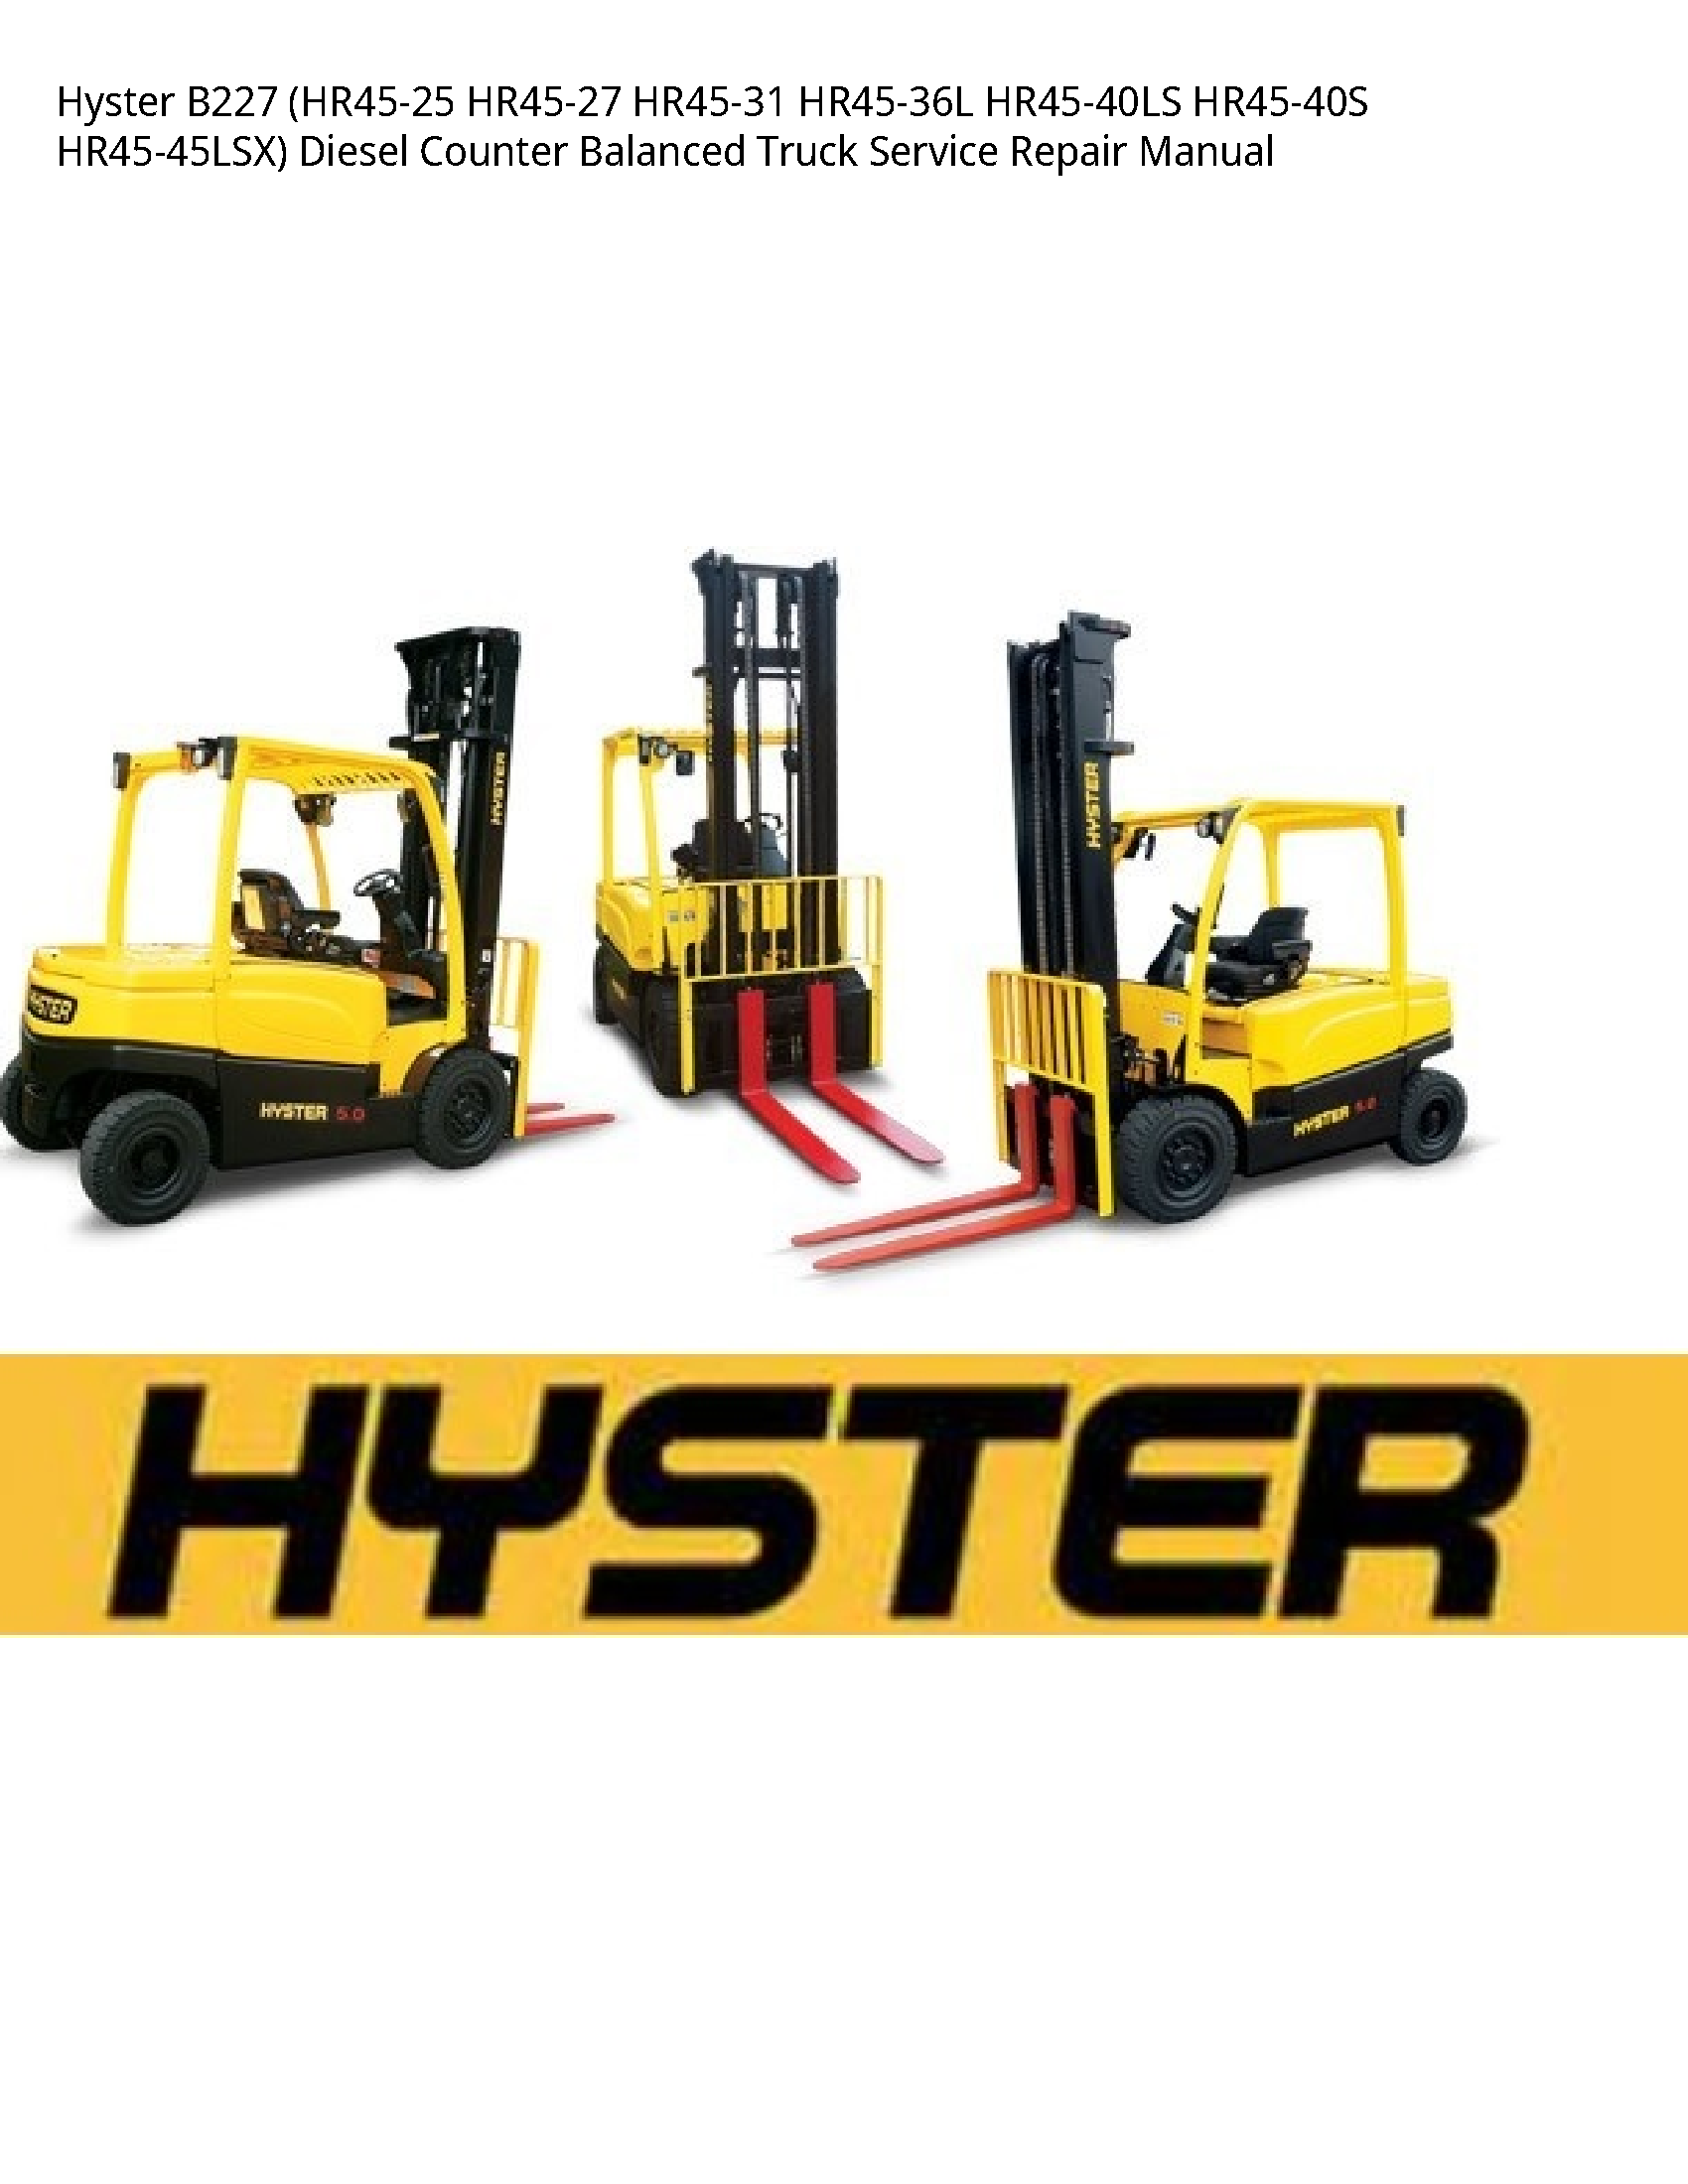 Hyster B227 Diesel Counter Balanced Truck manual